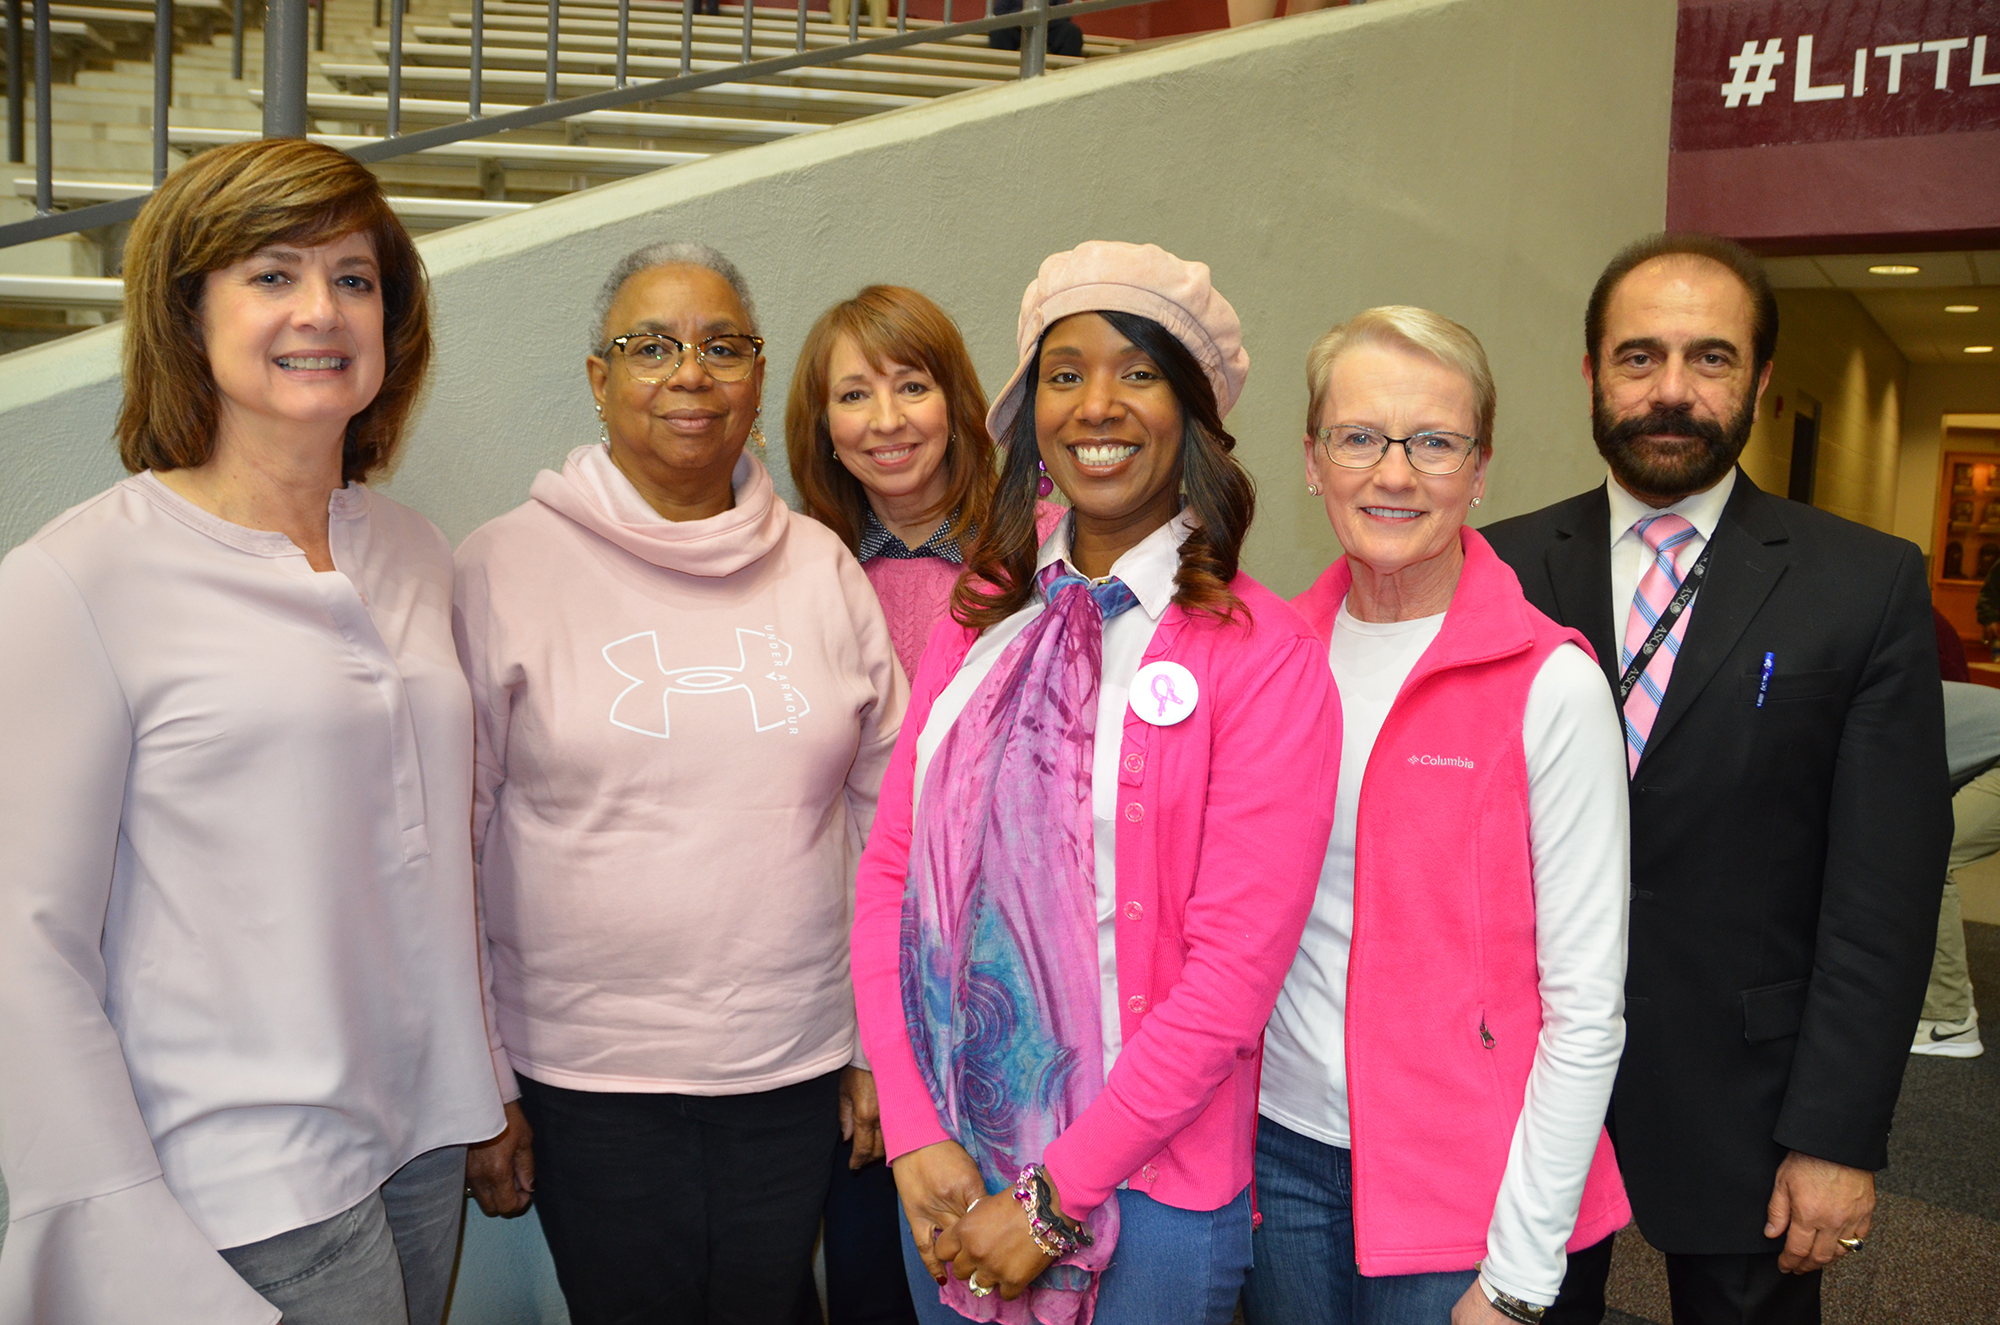 Honorees at the UALR Trojans women's basketball Pink Game were (left to right) Liz Caldwell, Donna Boxley, Laurie Shell, Abby Ellington, Terri Seiter and Issam Makhoul, M.D.